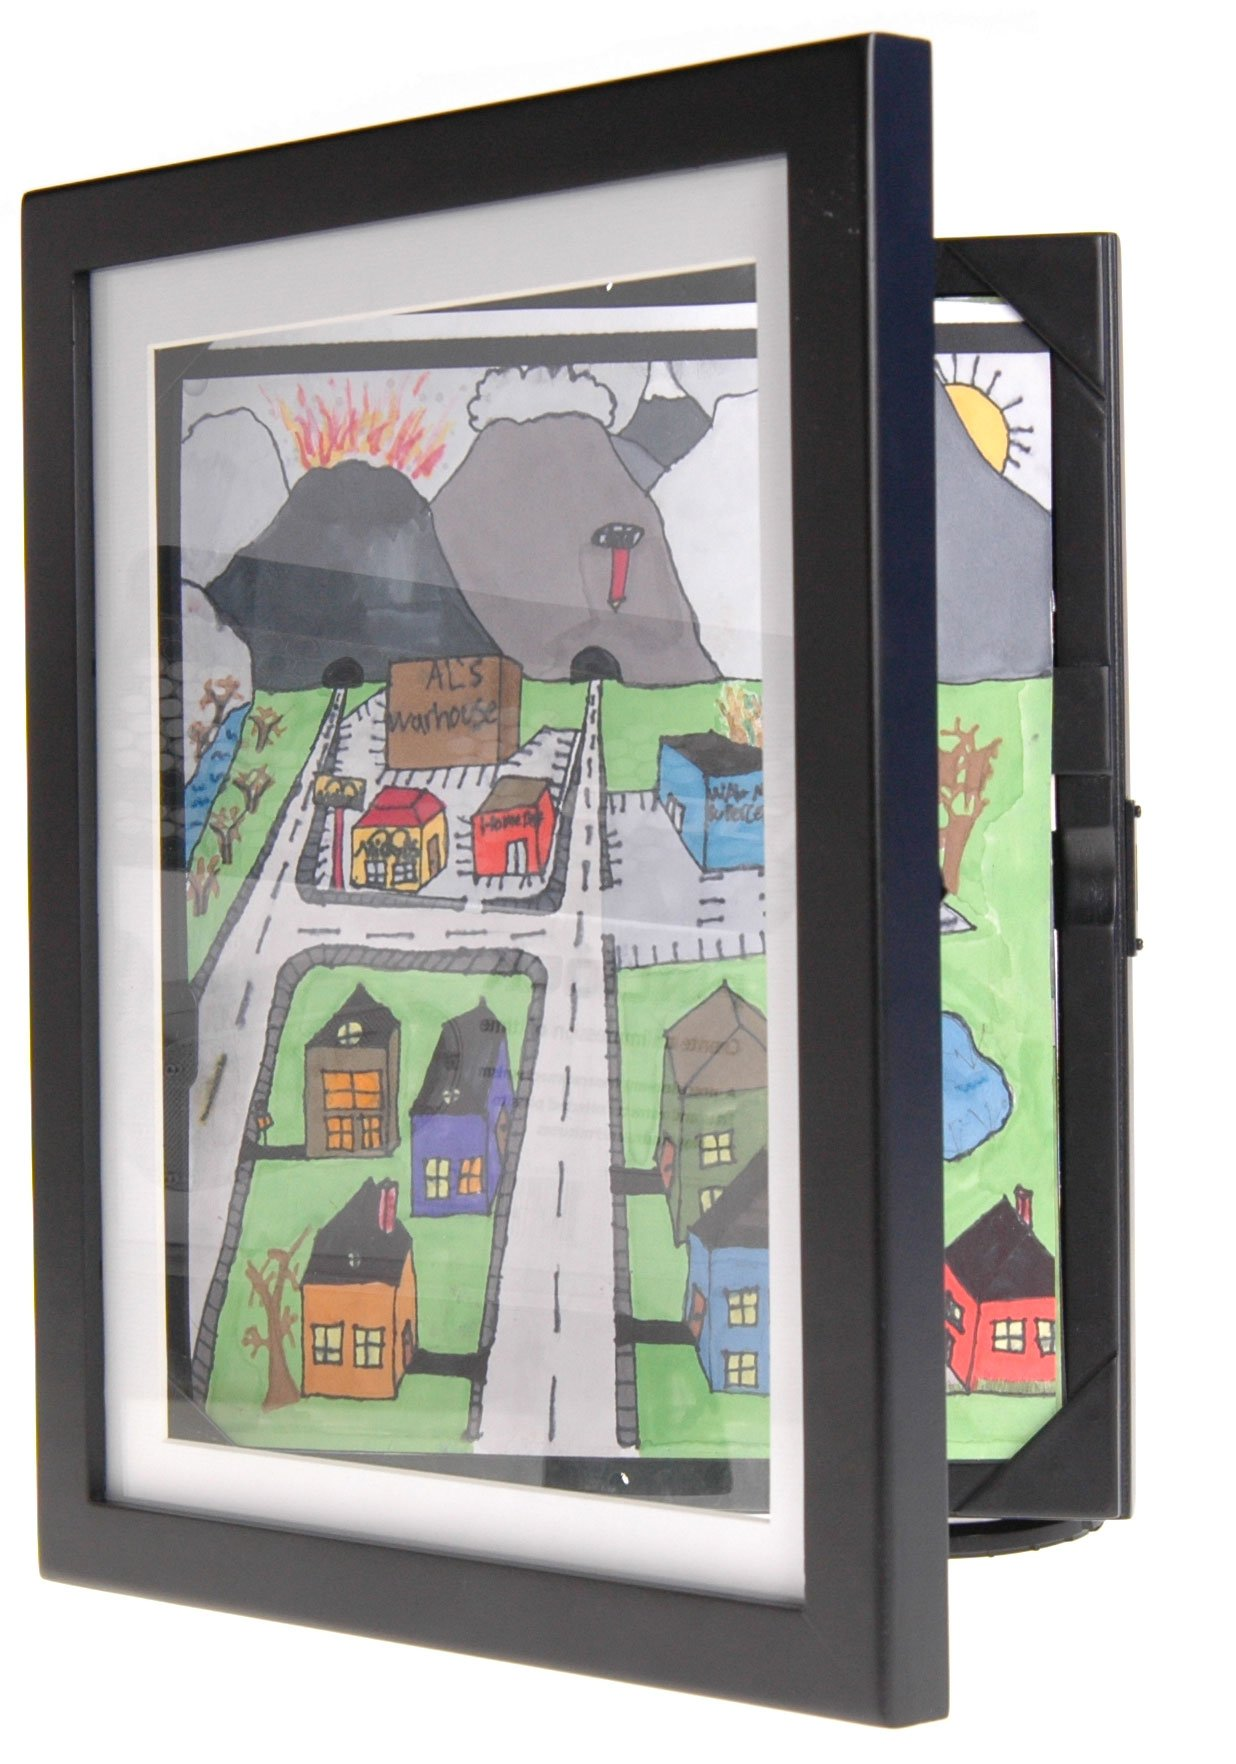 Amazon kids artwork frame 11x14 inch black picture frame child artwork frame display cabinet frames and stores your childs masterpieces 85 x jeuxipadfo Image collections